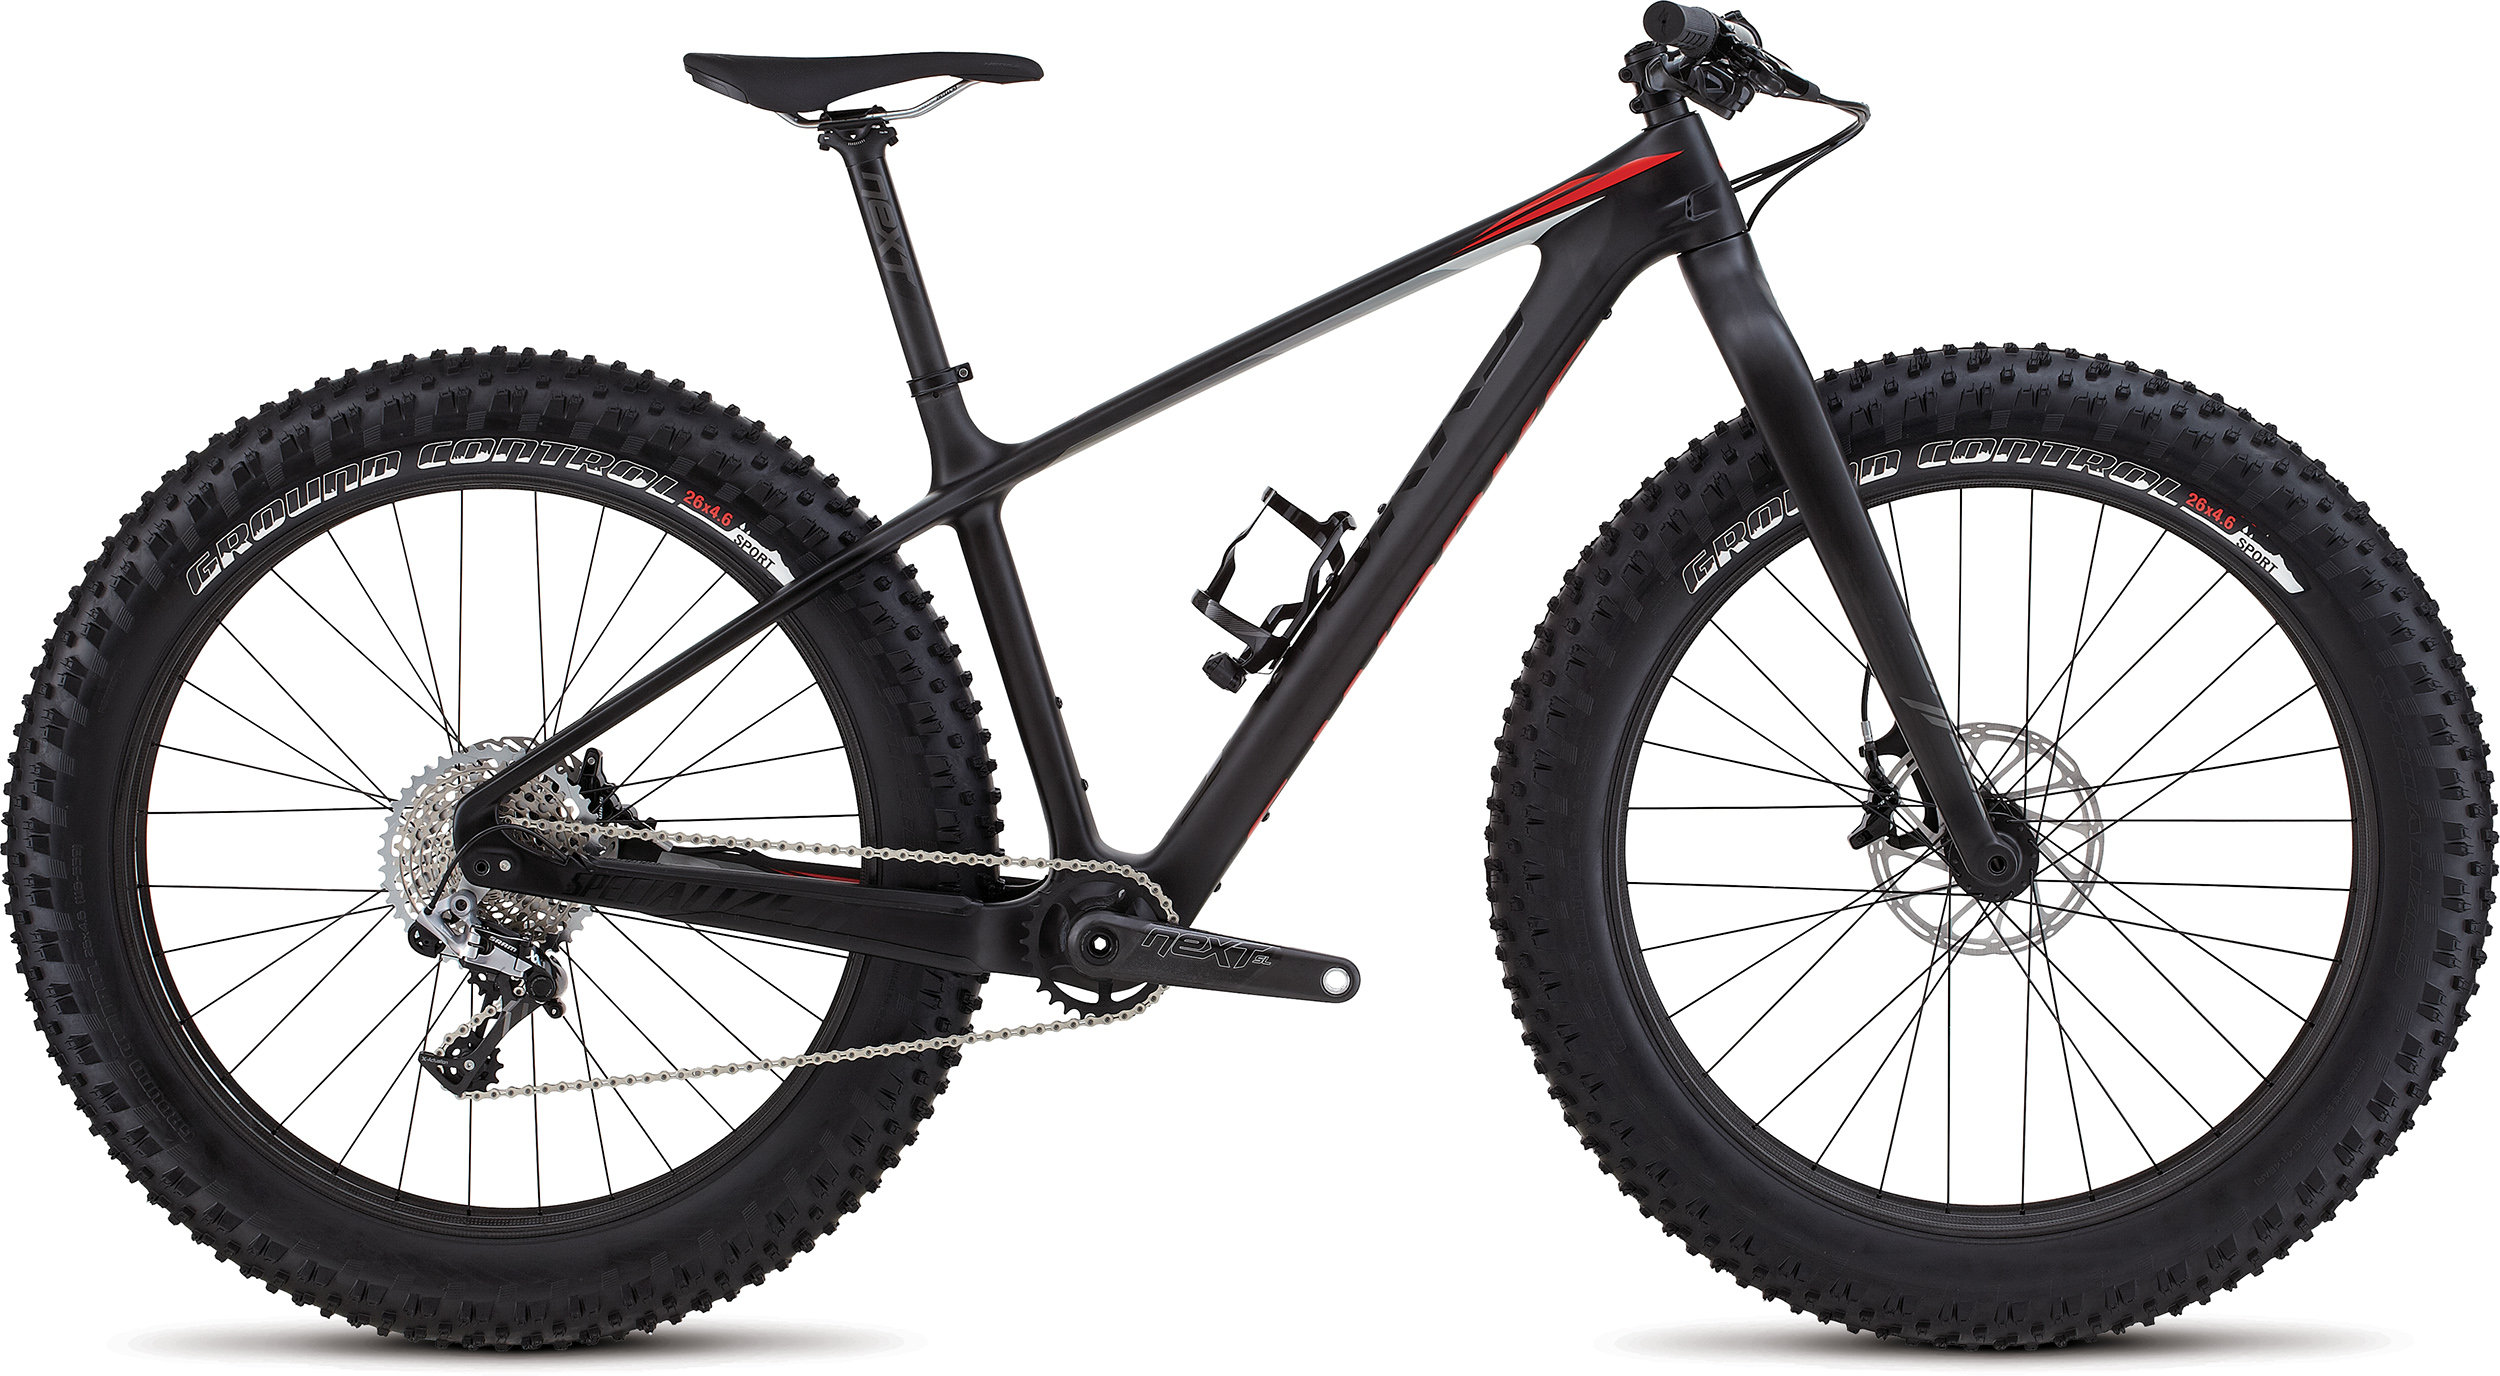 SPECIALIZED SW FATBOY CARBON CARB/BLK/RKTRED S - Bike Maniac